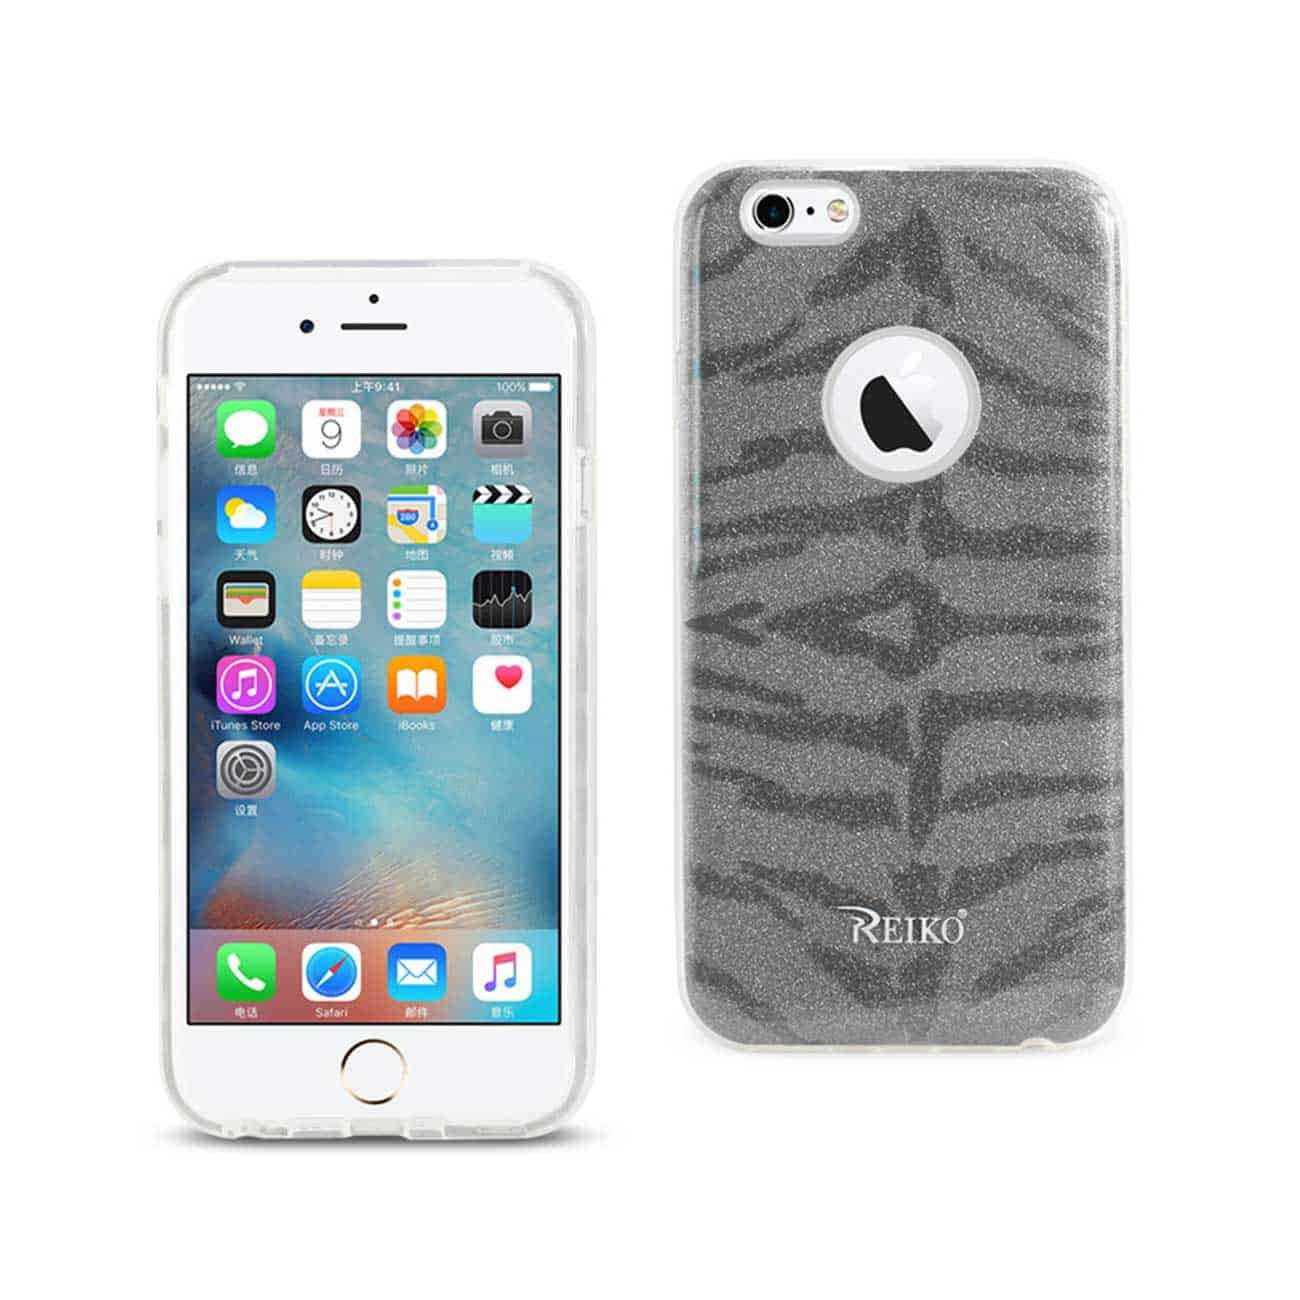 IPHONE 6/ 6S SHINE GLITTER SHIMMER TIGER STRIPE HYBRID CASE IN GRAY